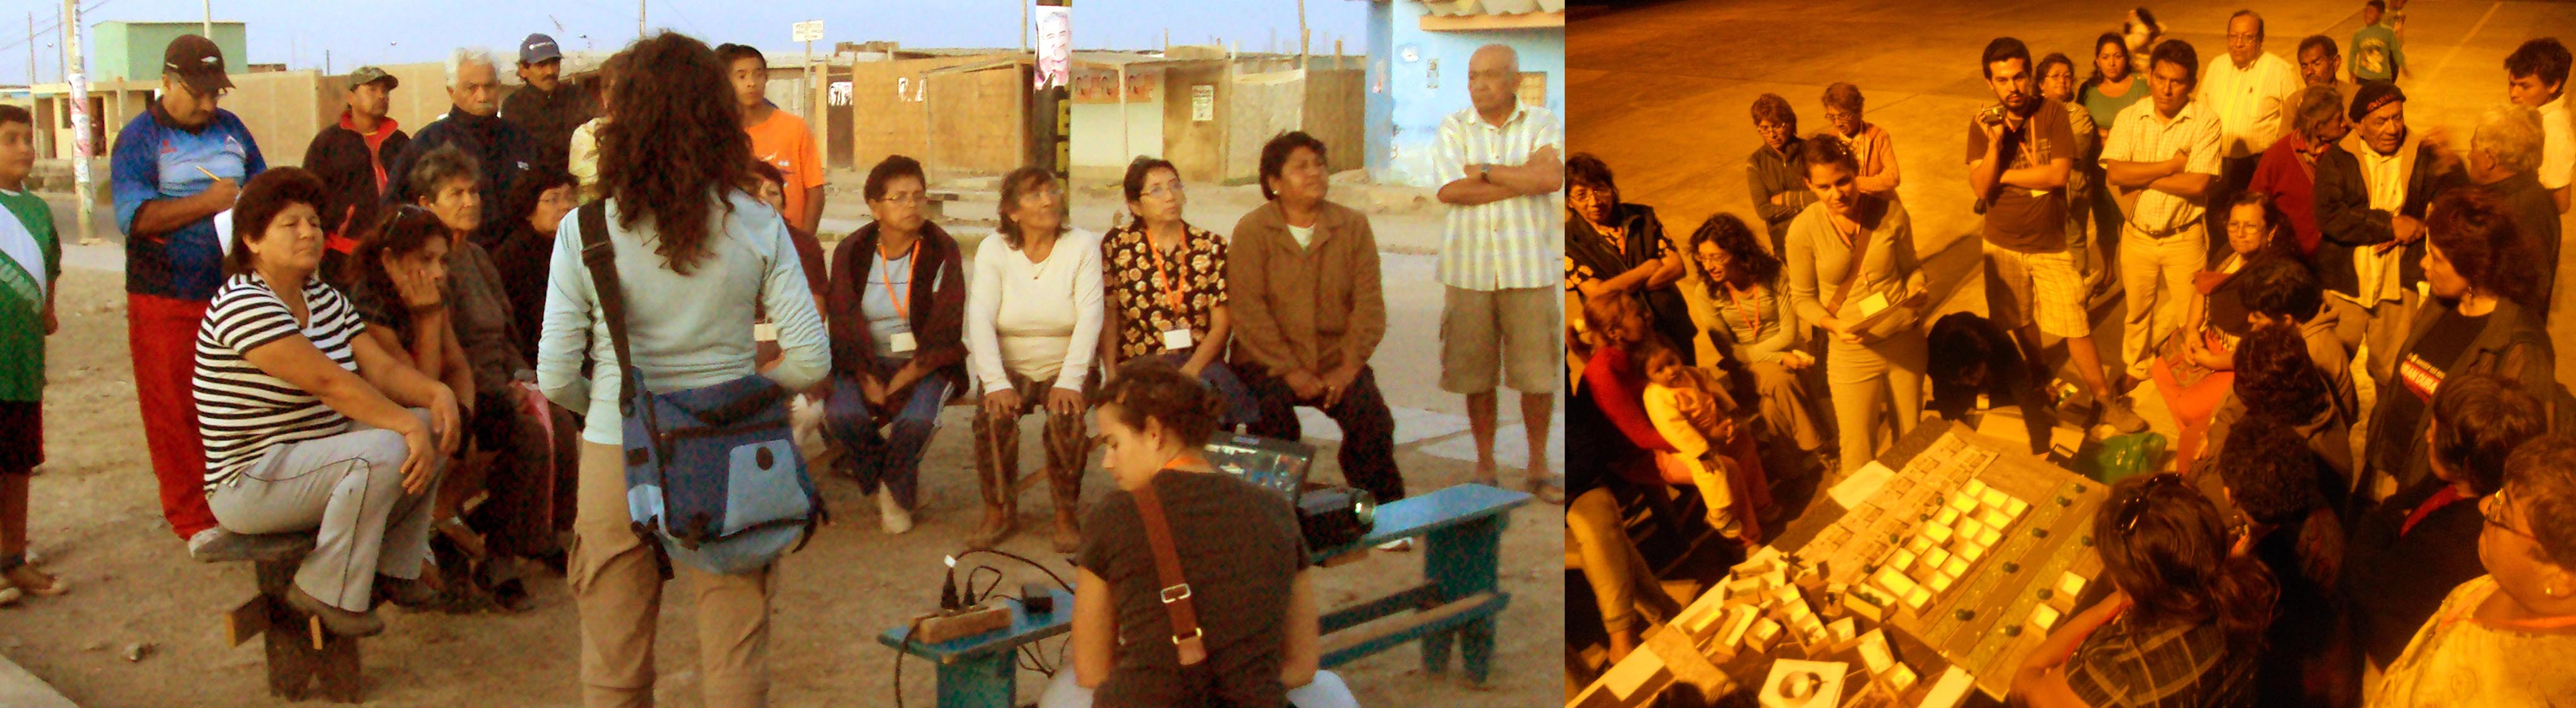 Participatory design workshops as part of Yo Soy Pisco